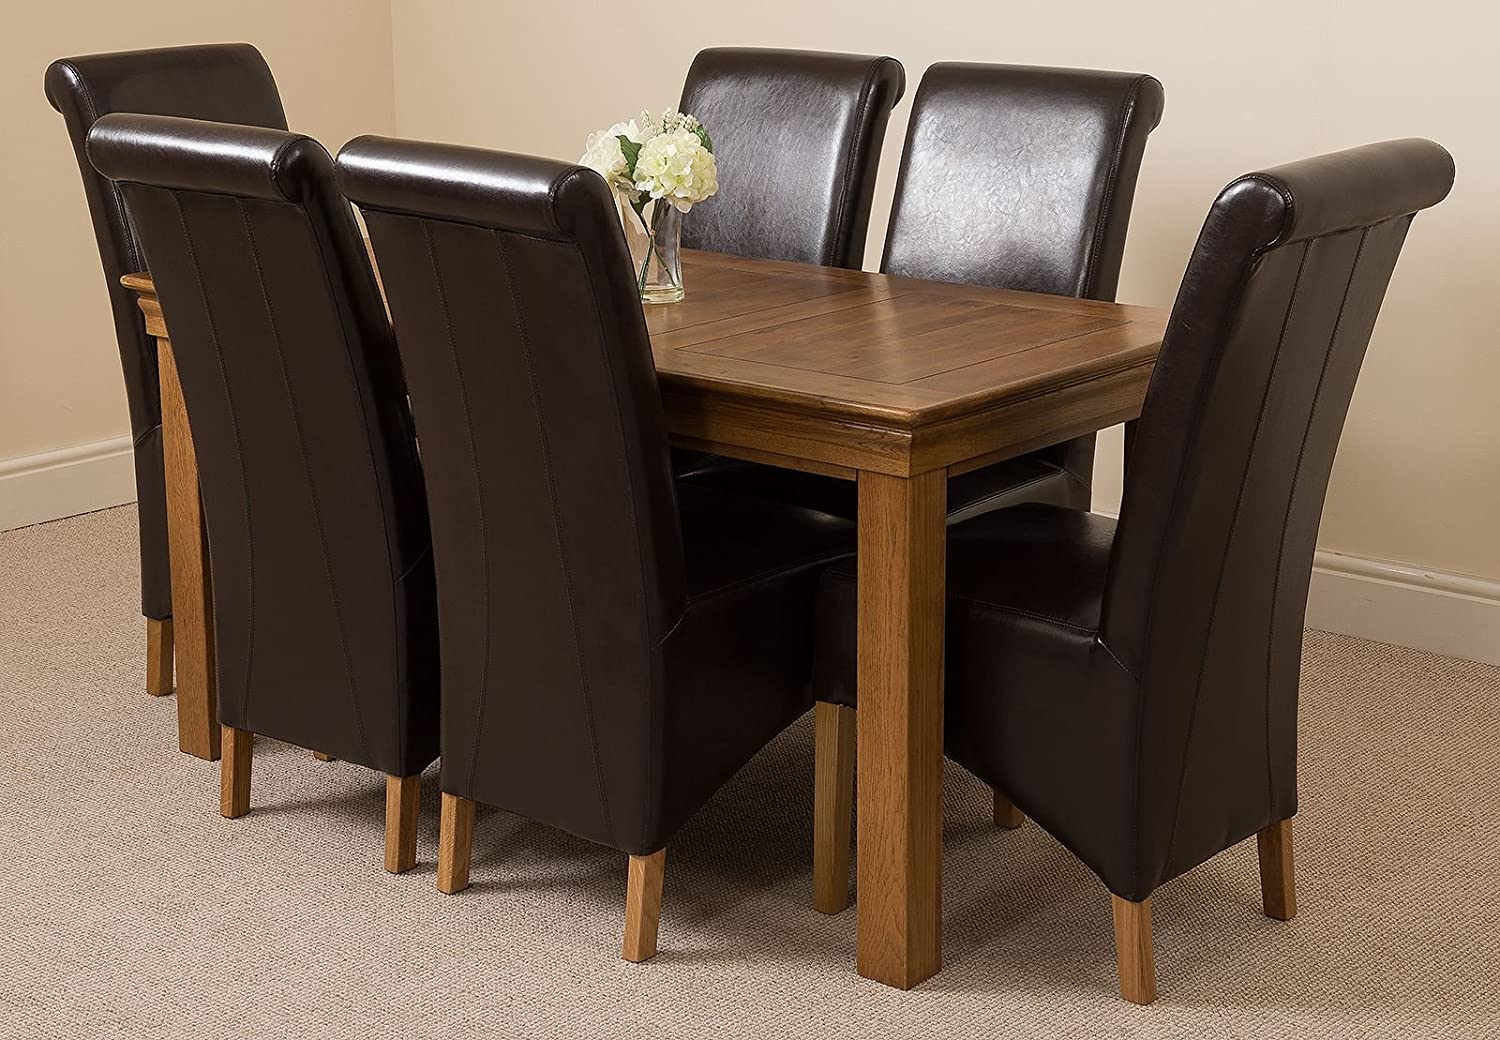 French rustic solid oak 150 cm dining table 6 brown montana dining chairs amazon co uk kitchen home